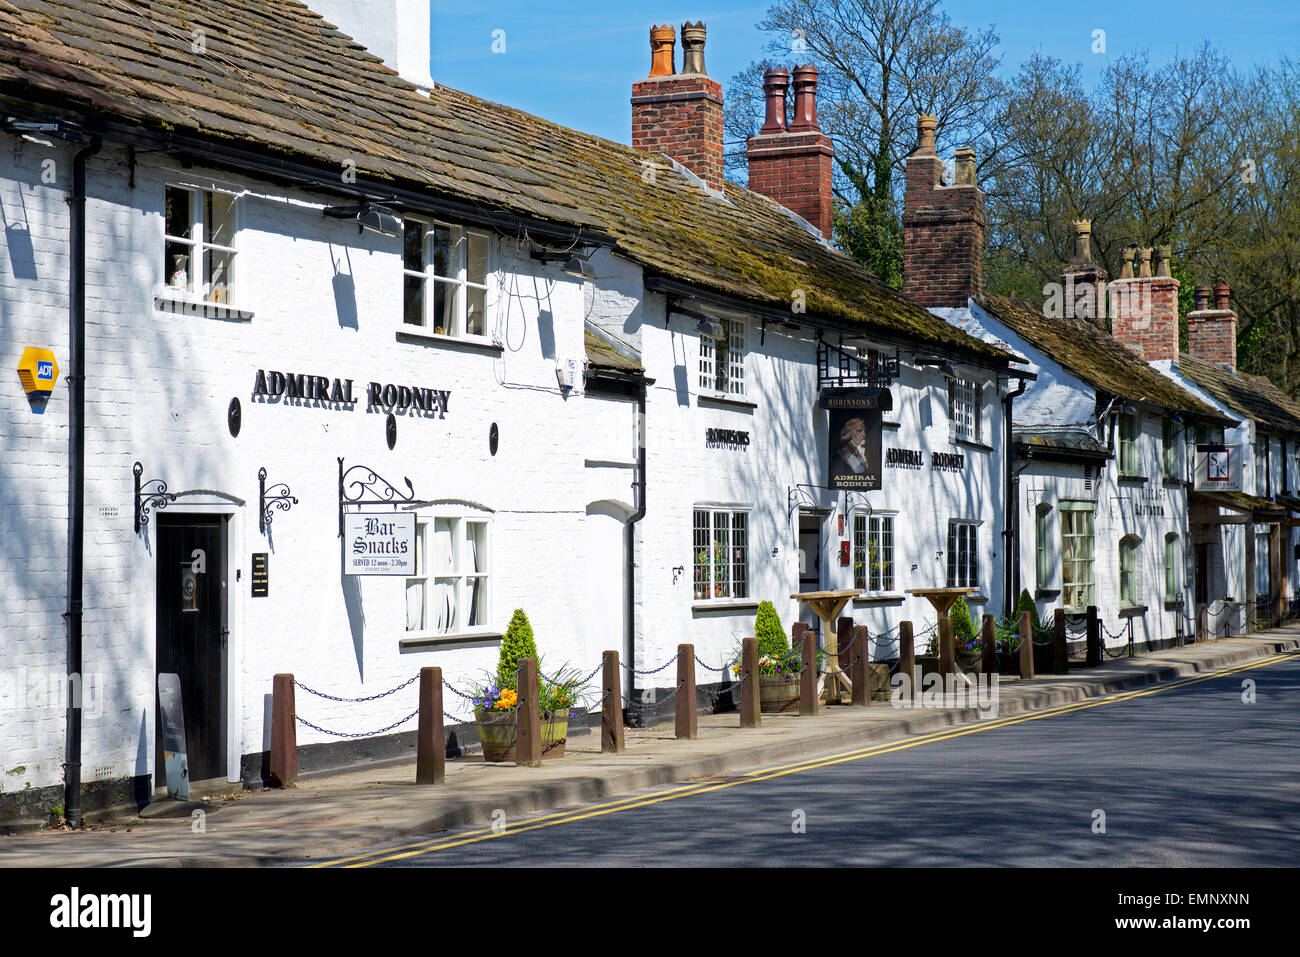 Pub, Ye Olde Admiral Rodney, in the village of Prestbury, Cheshire, England UK - Stock Image